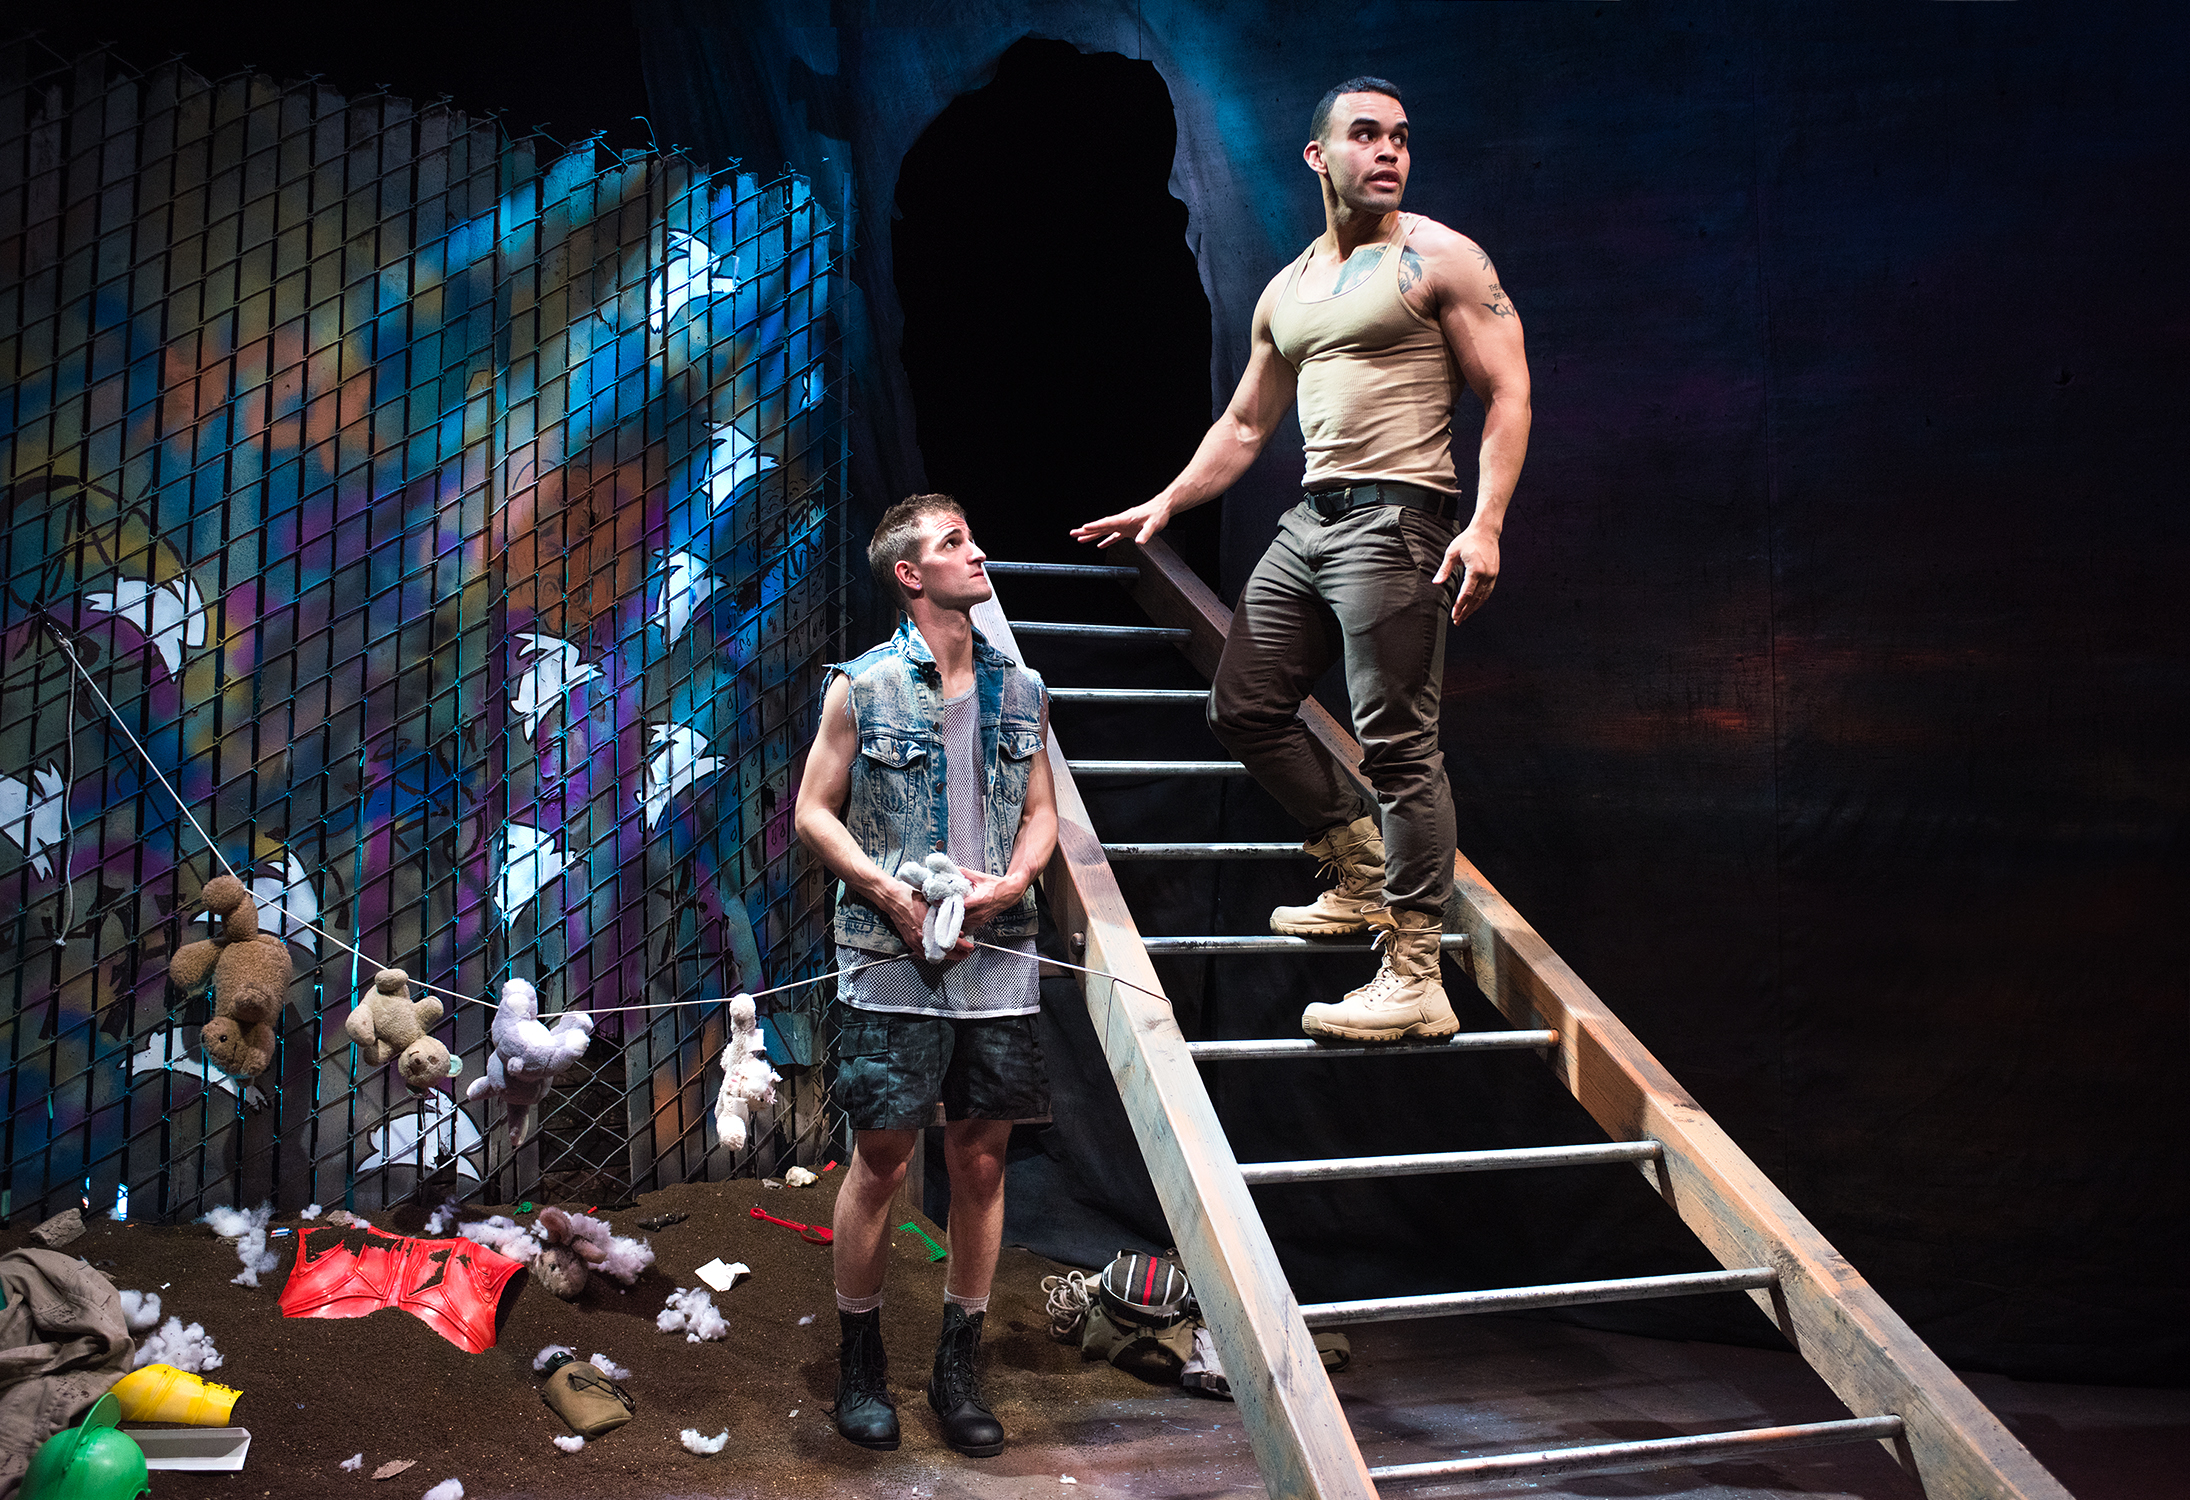 JD Scalzo, Ed Berkeley.  Scenic Design by Devin Kasper, Costume Design by Miriam Lewis, Lighting Design by Christian V. Mejia, Sound Design by Theodore J.H. Hulsker, Prop Design by Adeline Smith, Stage Management by Kaitlin Rosen.  Photo by Lois Tema.